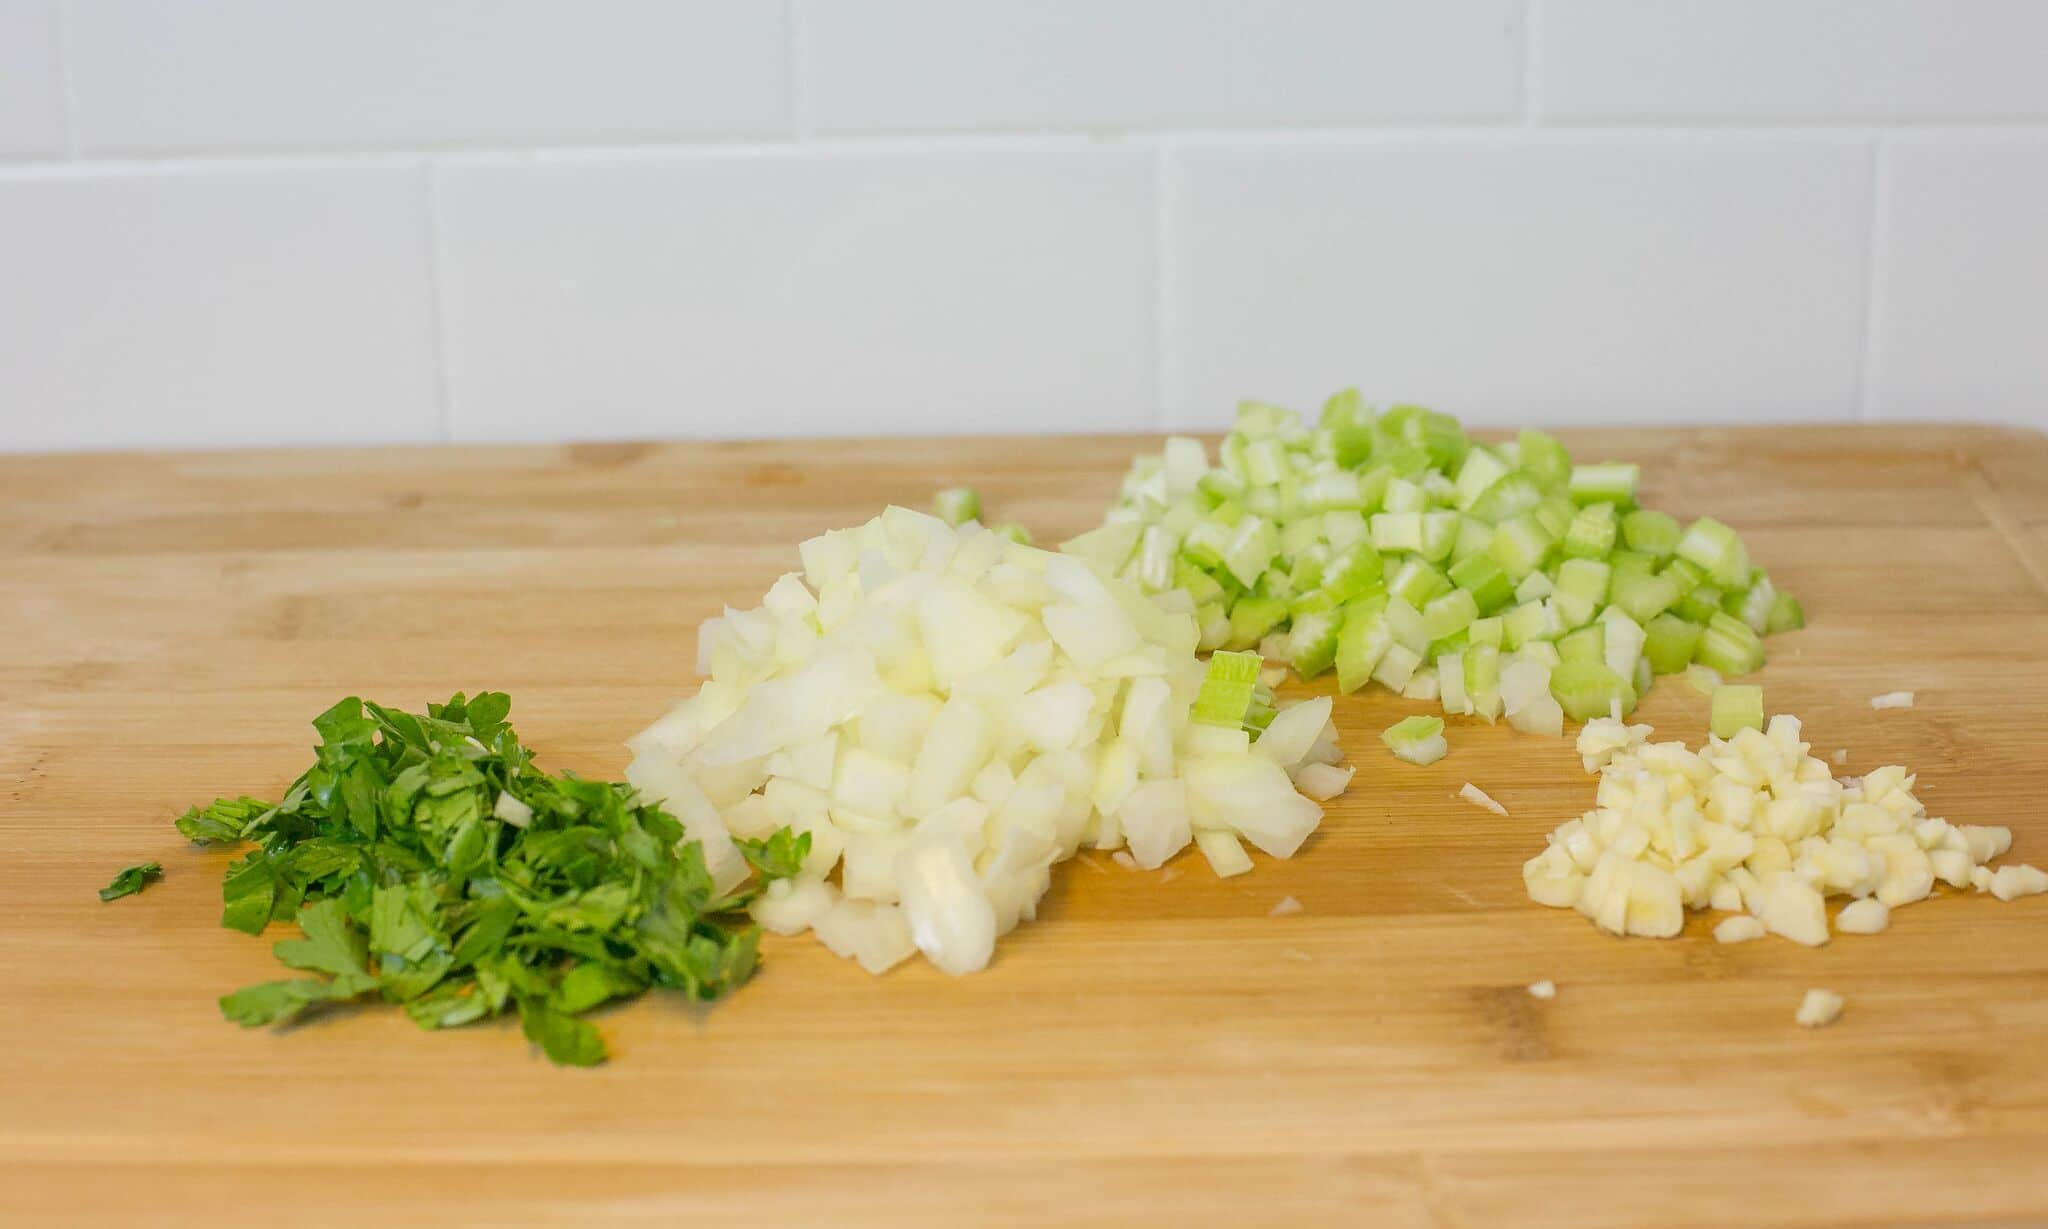 Chop onions, celery, parsley and garlic; set aside.